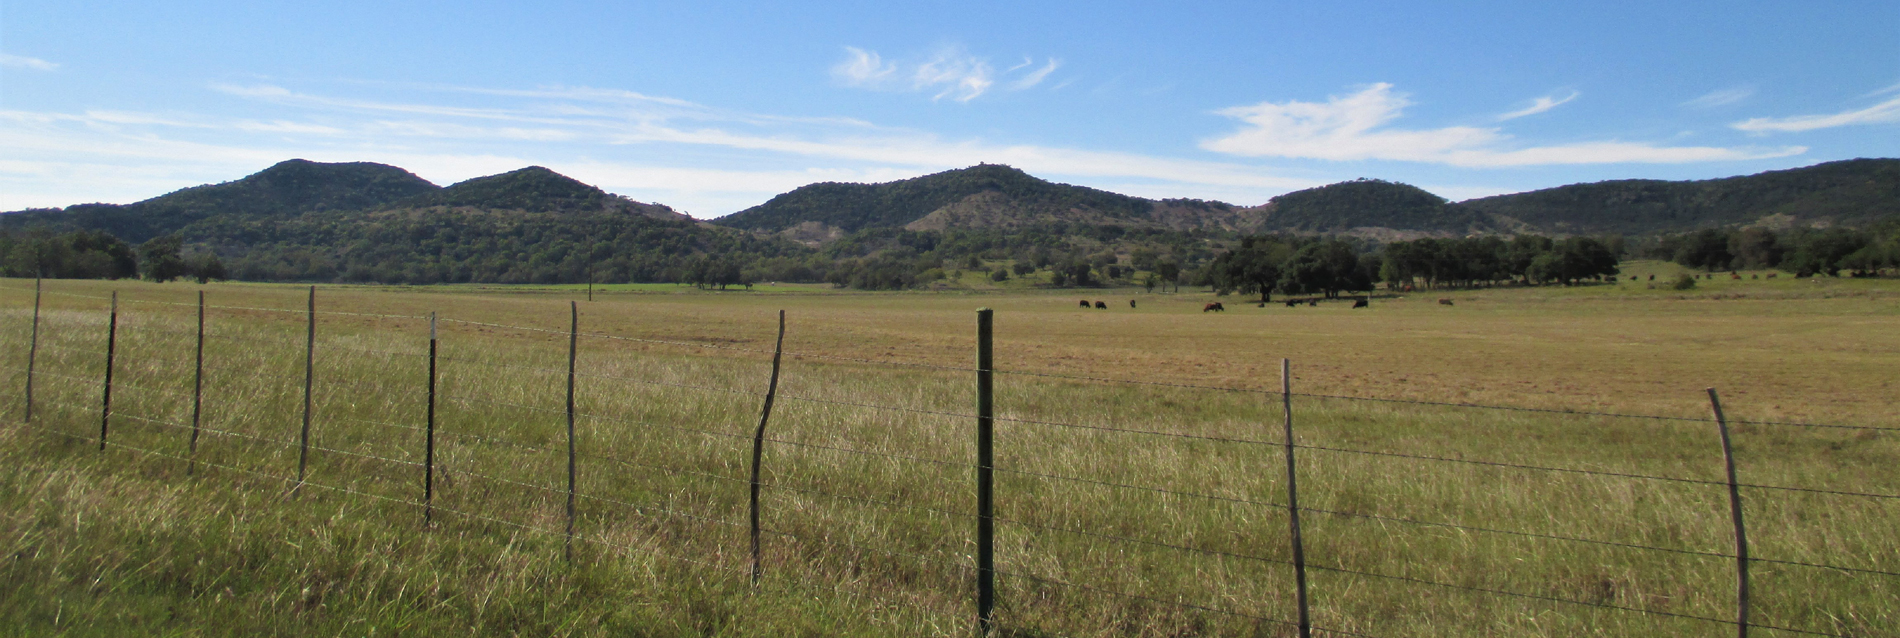 fenceline with hills in the background